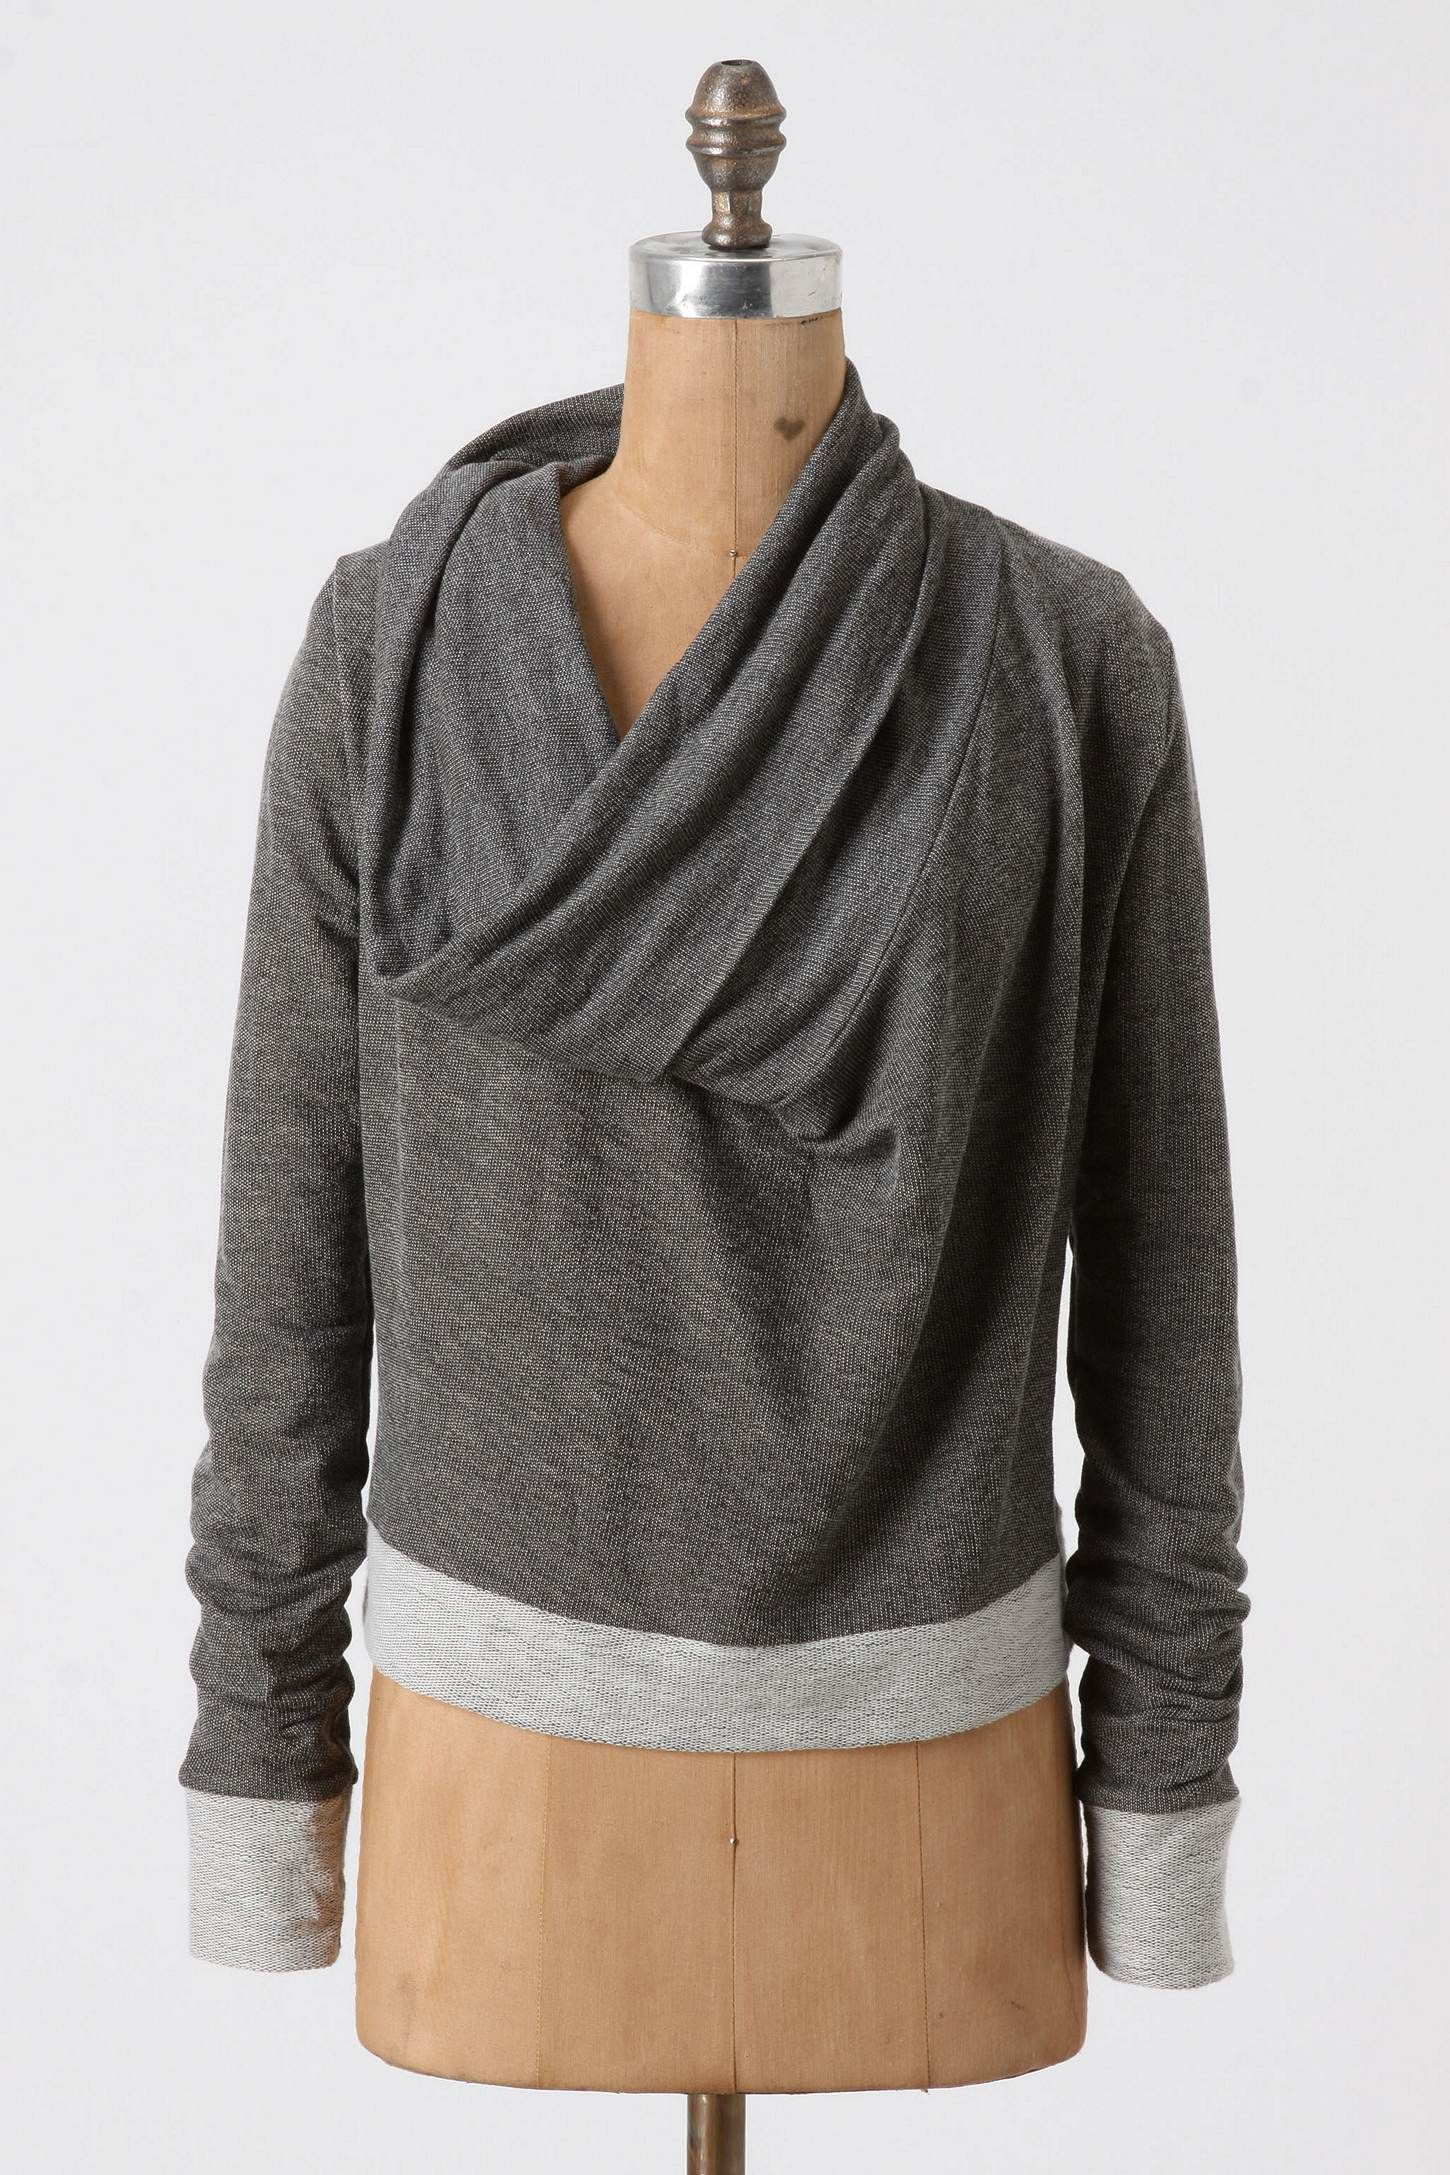 Forest Frolic Pullover $58, Anthropologie I love the oversized cowl neck